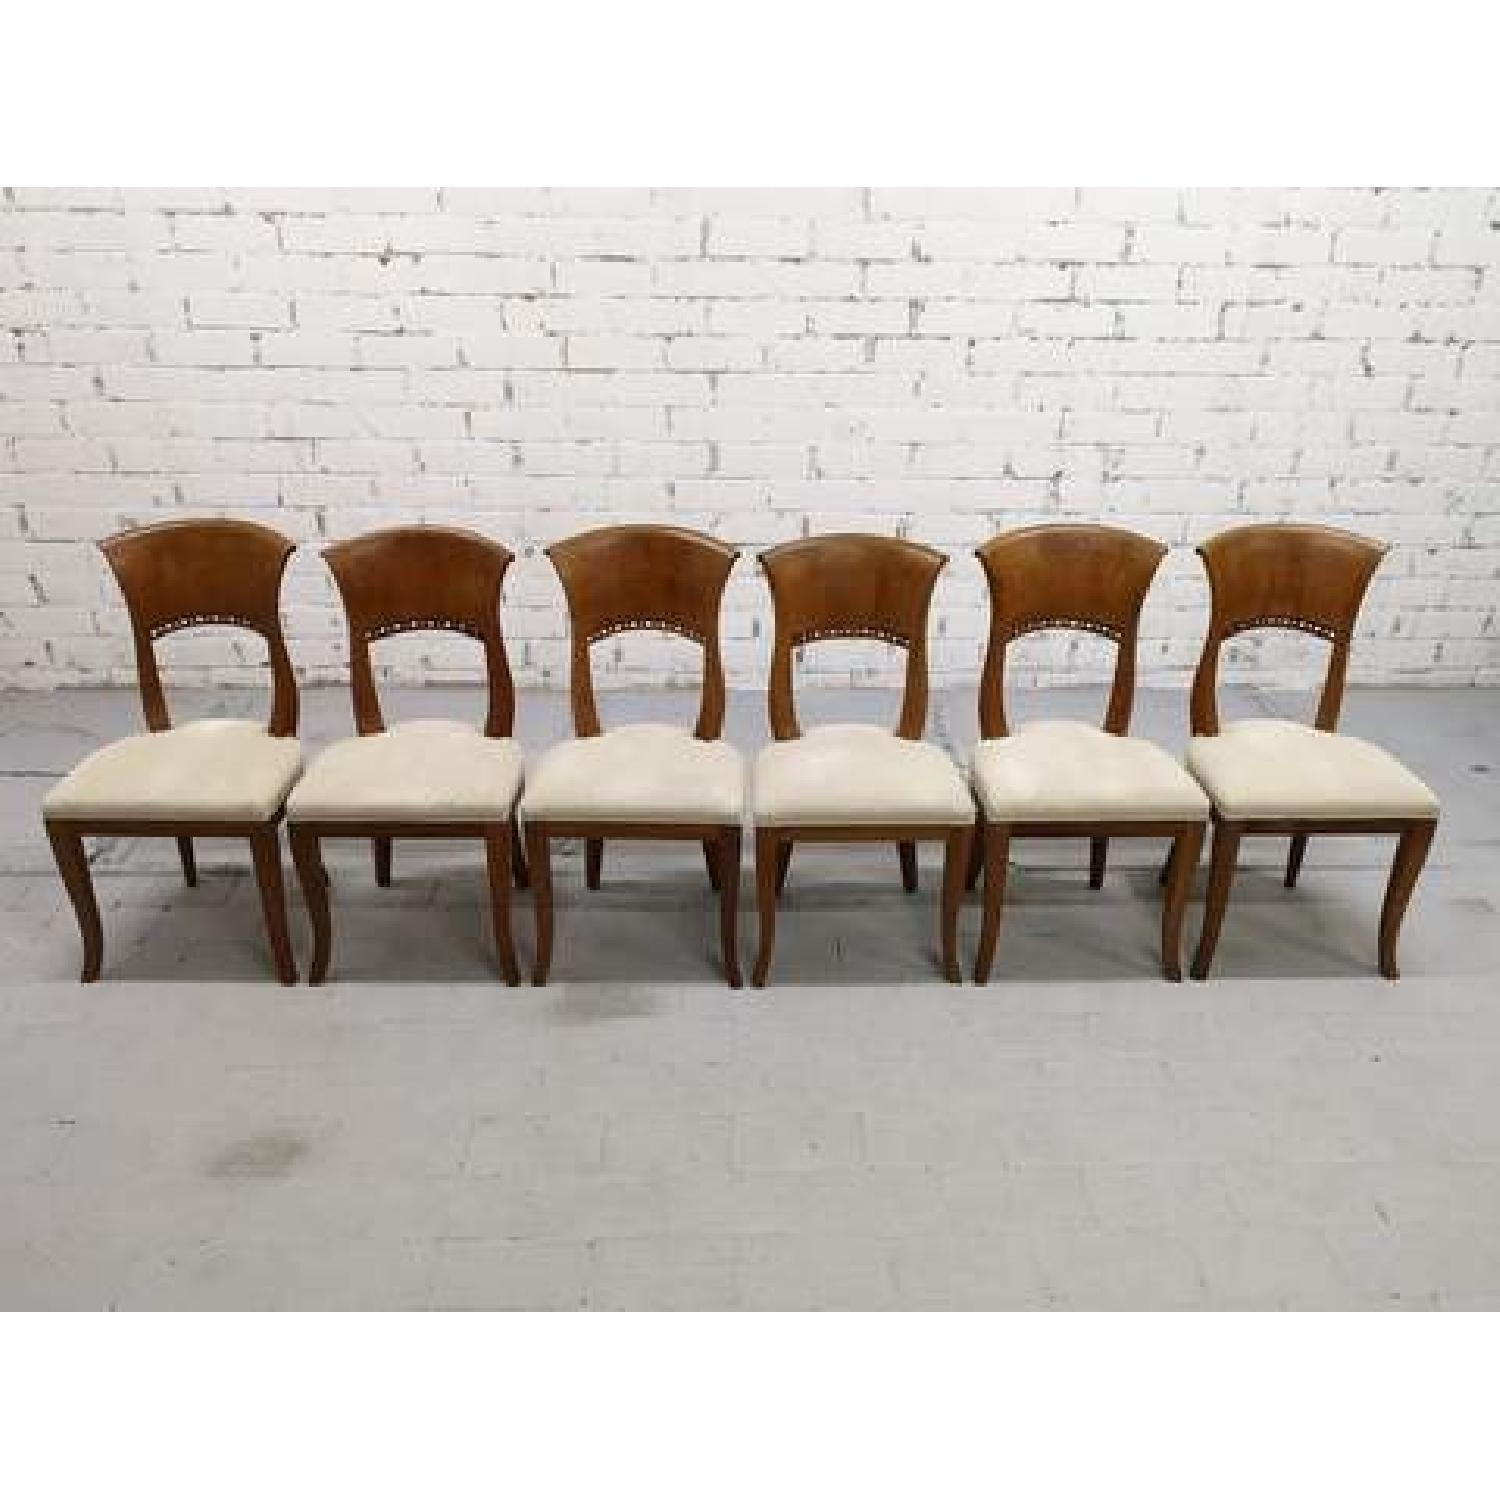 Art Deco Dining Chairs French Oak Early 20th Century Art Deco Dining Chairs